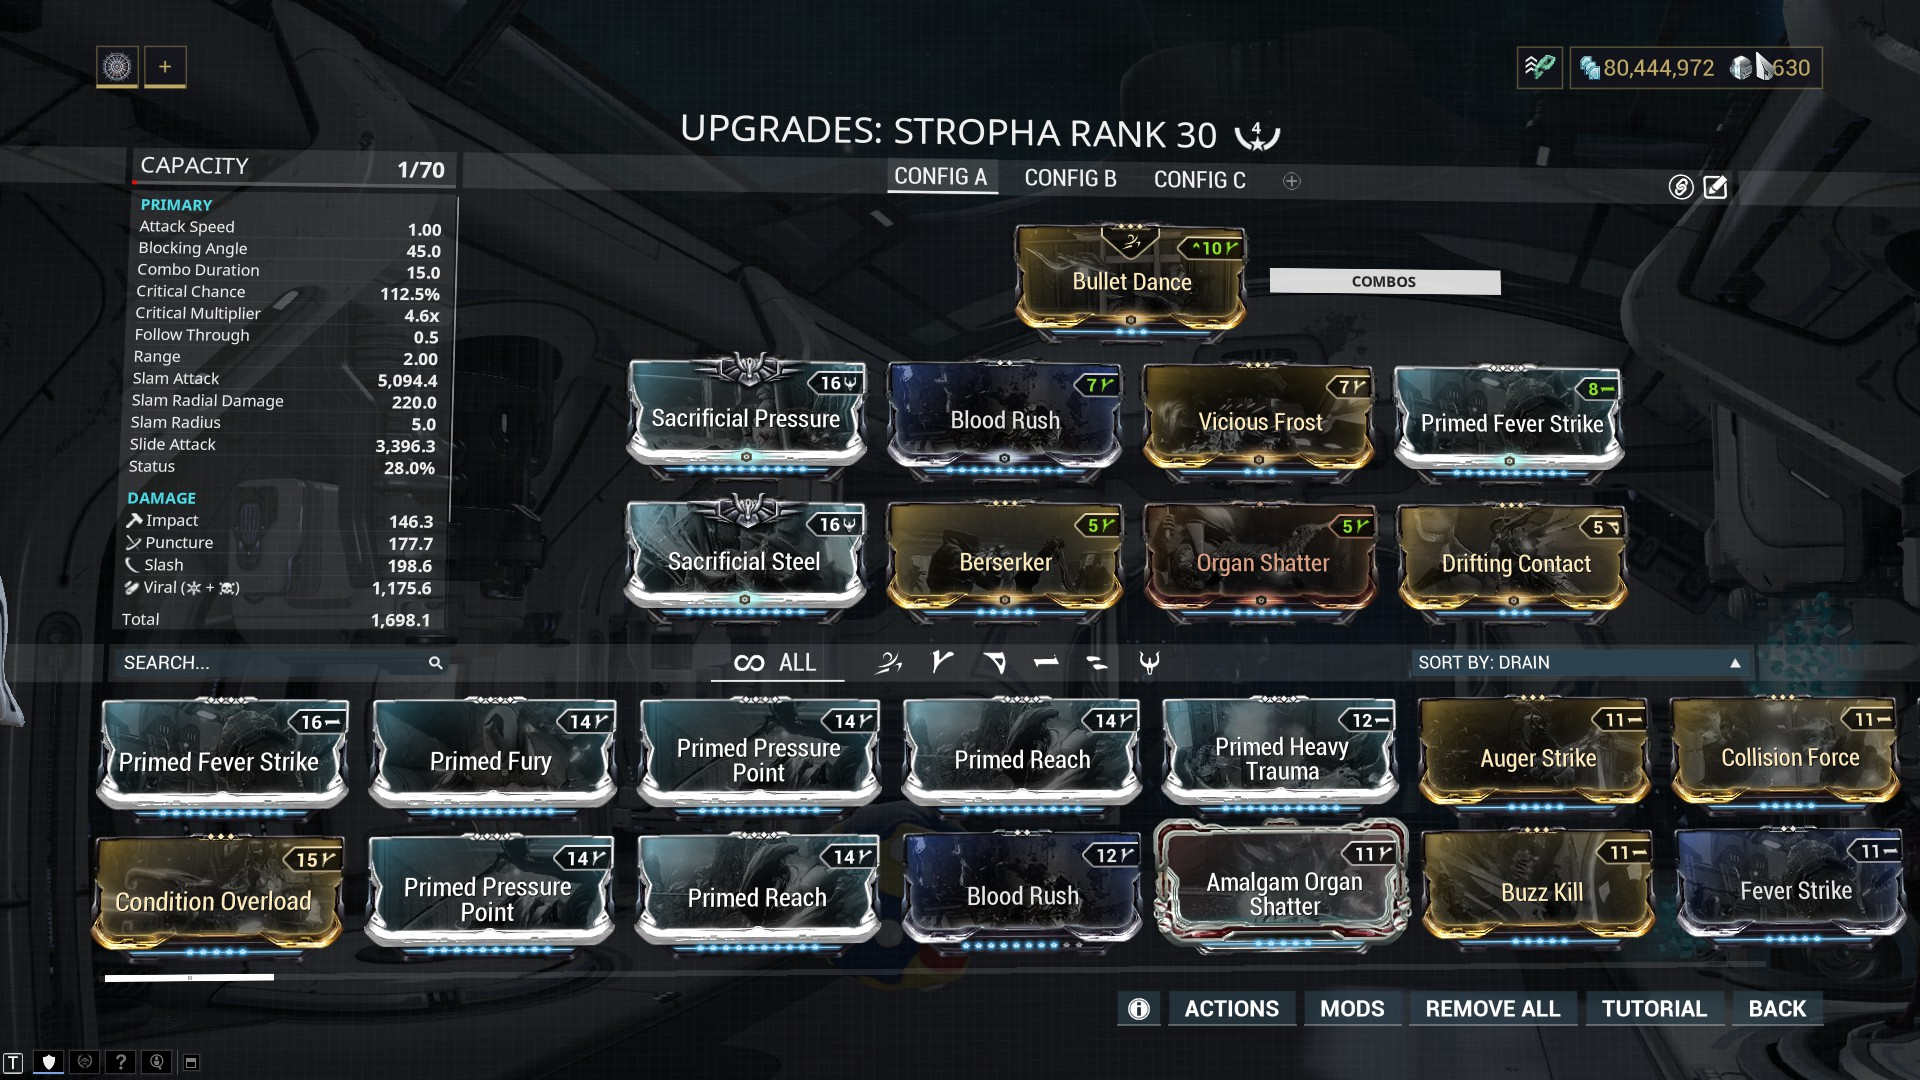 Warframe Heart Of Deimos Ars Technica Openforum She controls antimatter, using it to manipulate both the enemies and the outcome of missions by not only supporting her allies and. warframe heart of deimos ars